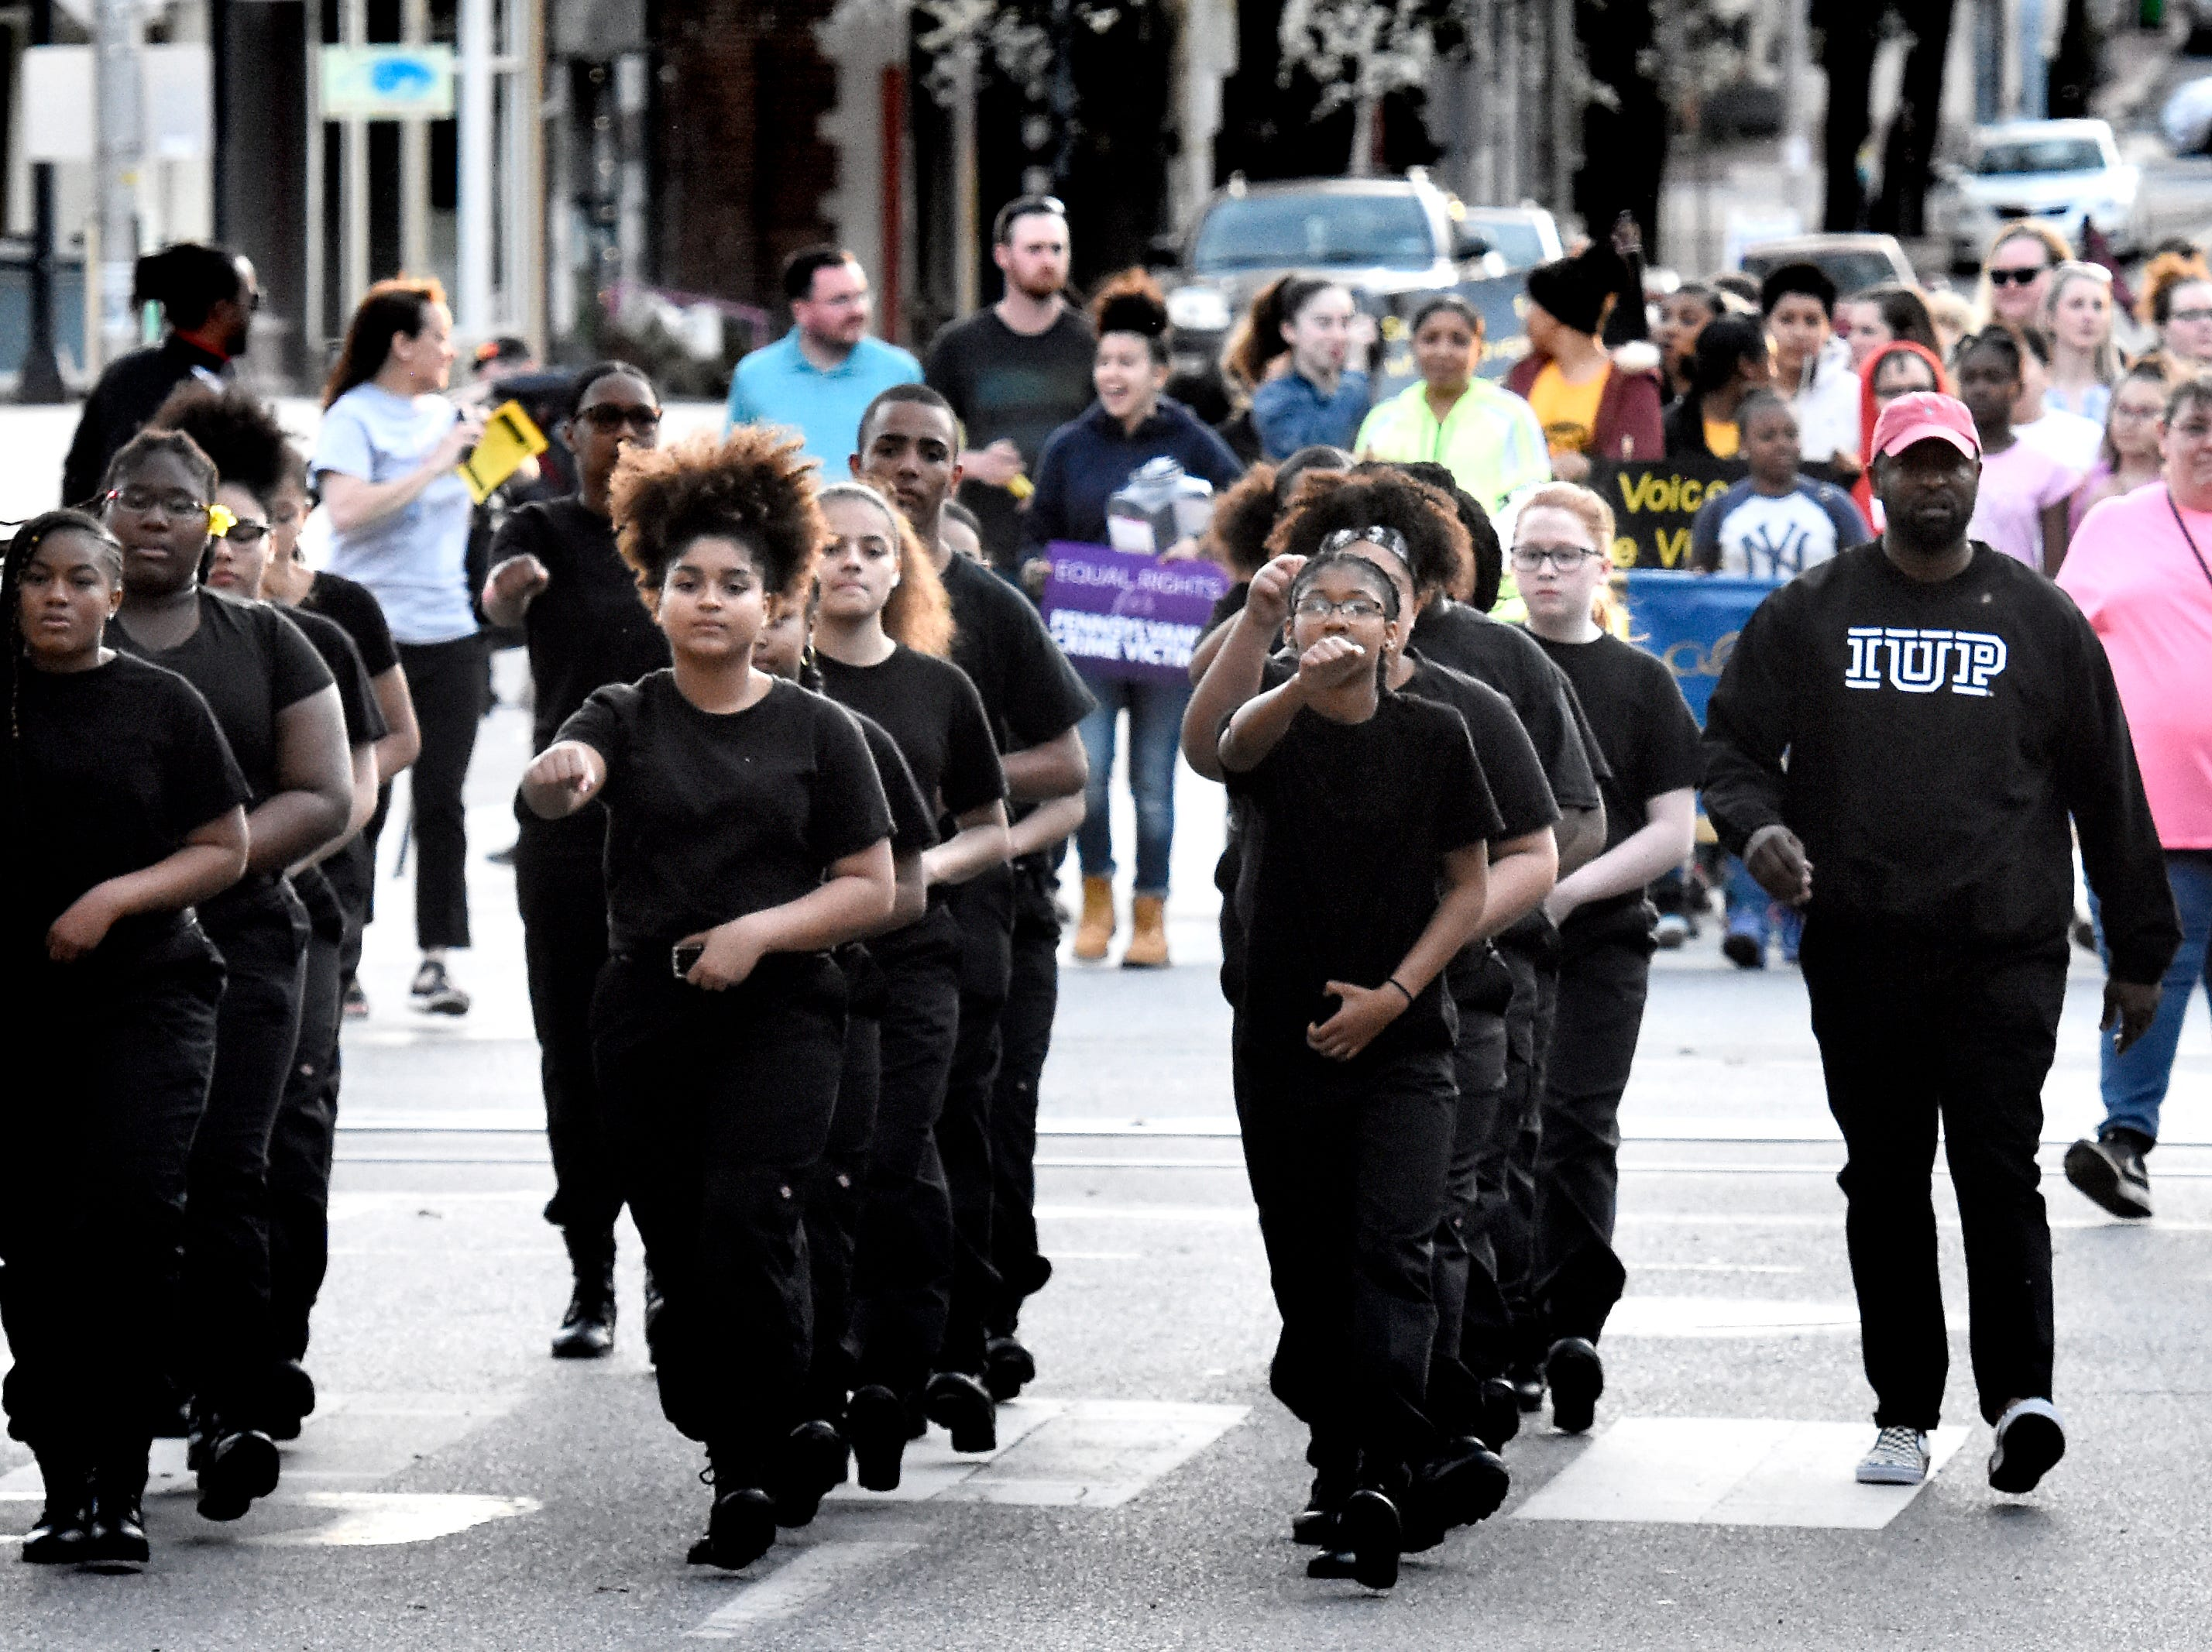 The York Temple Guard leads a march along West Market street from Colonial Courthouse to Trinity United Church of Christ during the 33rd annual Crime Victims' Rights March and Candlelight Vigil Tuesday, April 9, 2019. Participants gathered at the courthouse for a presentation before marching to the church for a ceremony and candlelight vigil. The York County Victims' Rights Coalition sponsored the event. Bill Kalina photo